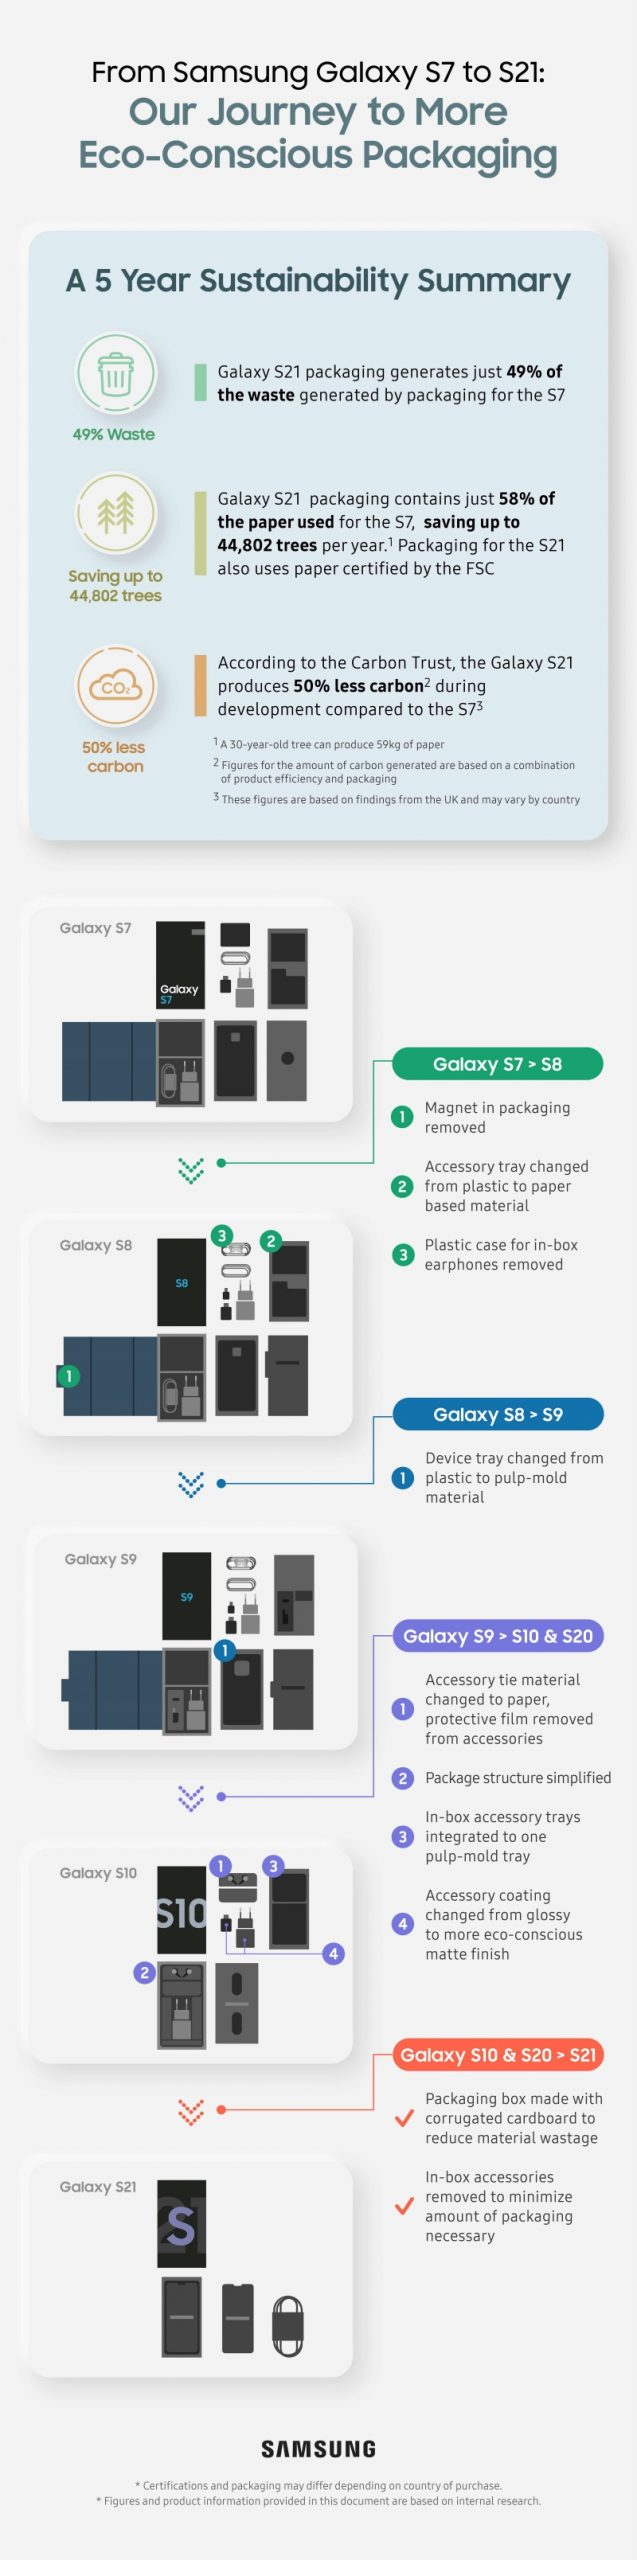 6_Infographic_Journey to more Eco-Conscious Packaging (full)